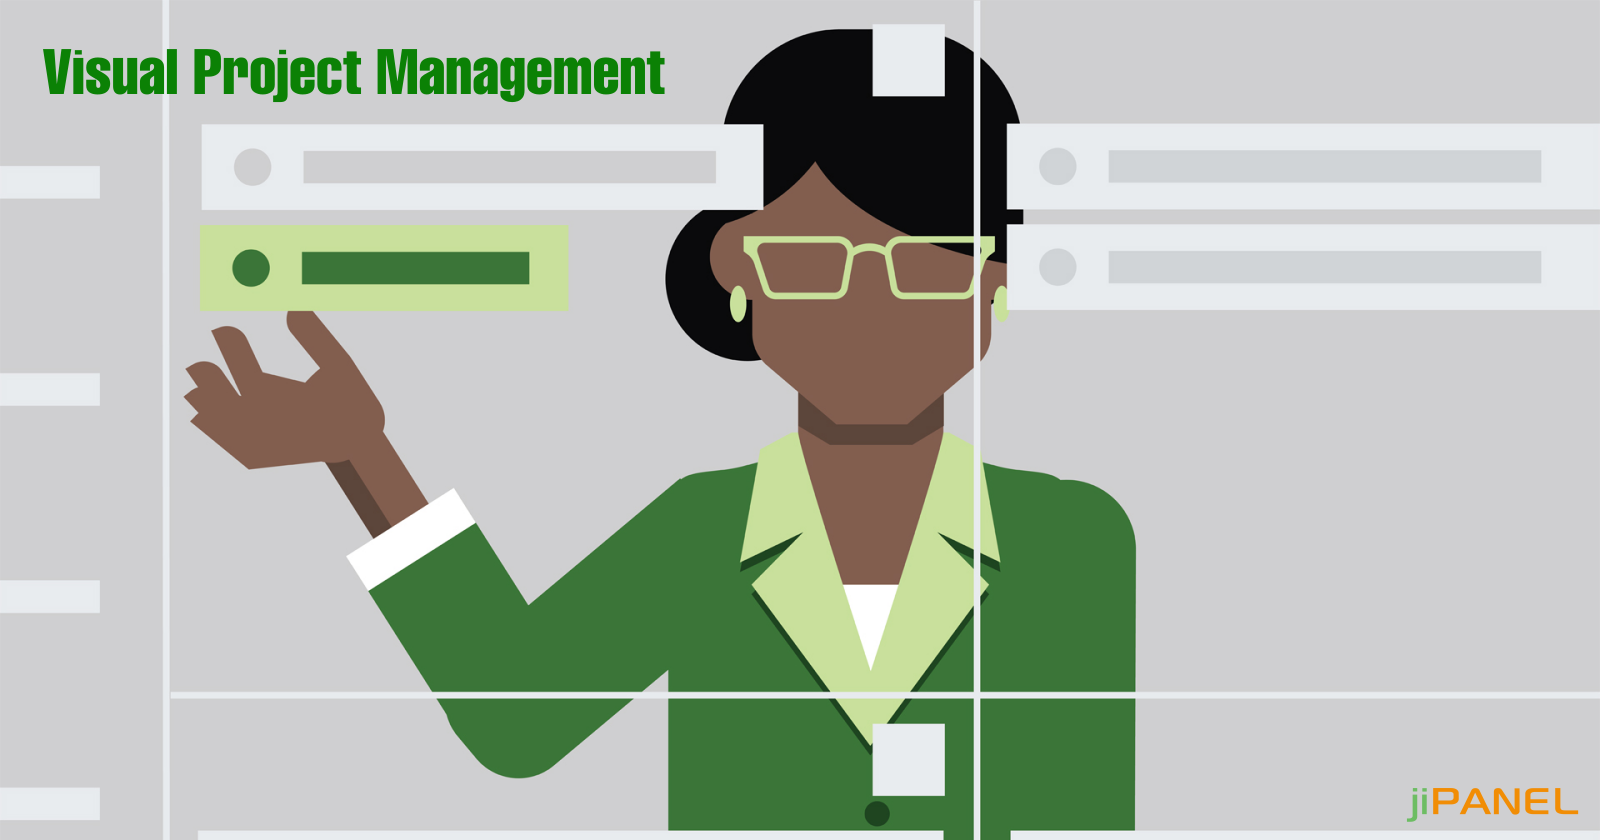 Introducing The Visual Form of Project Management System